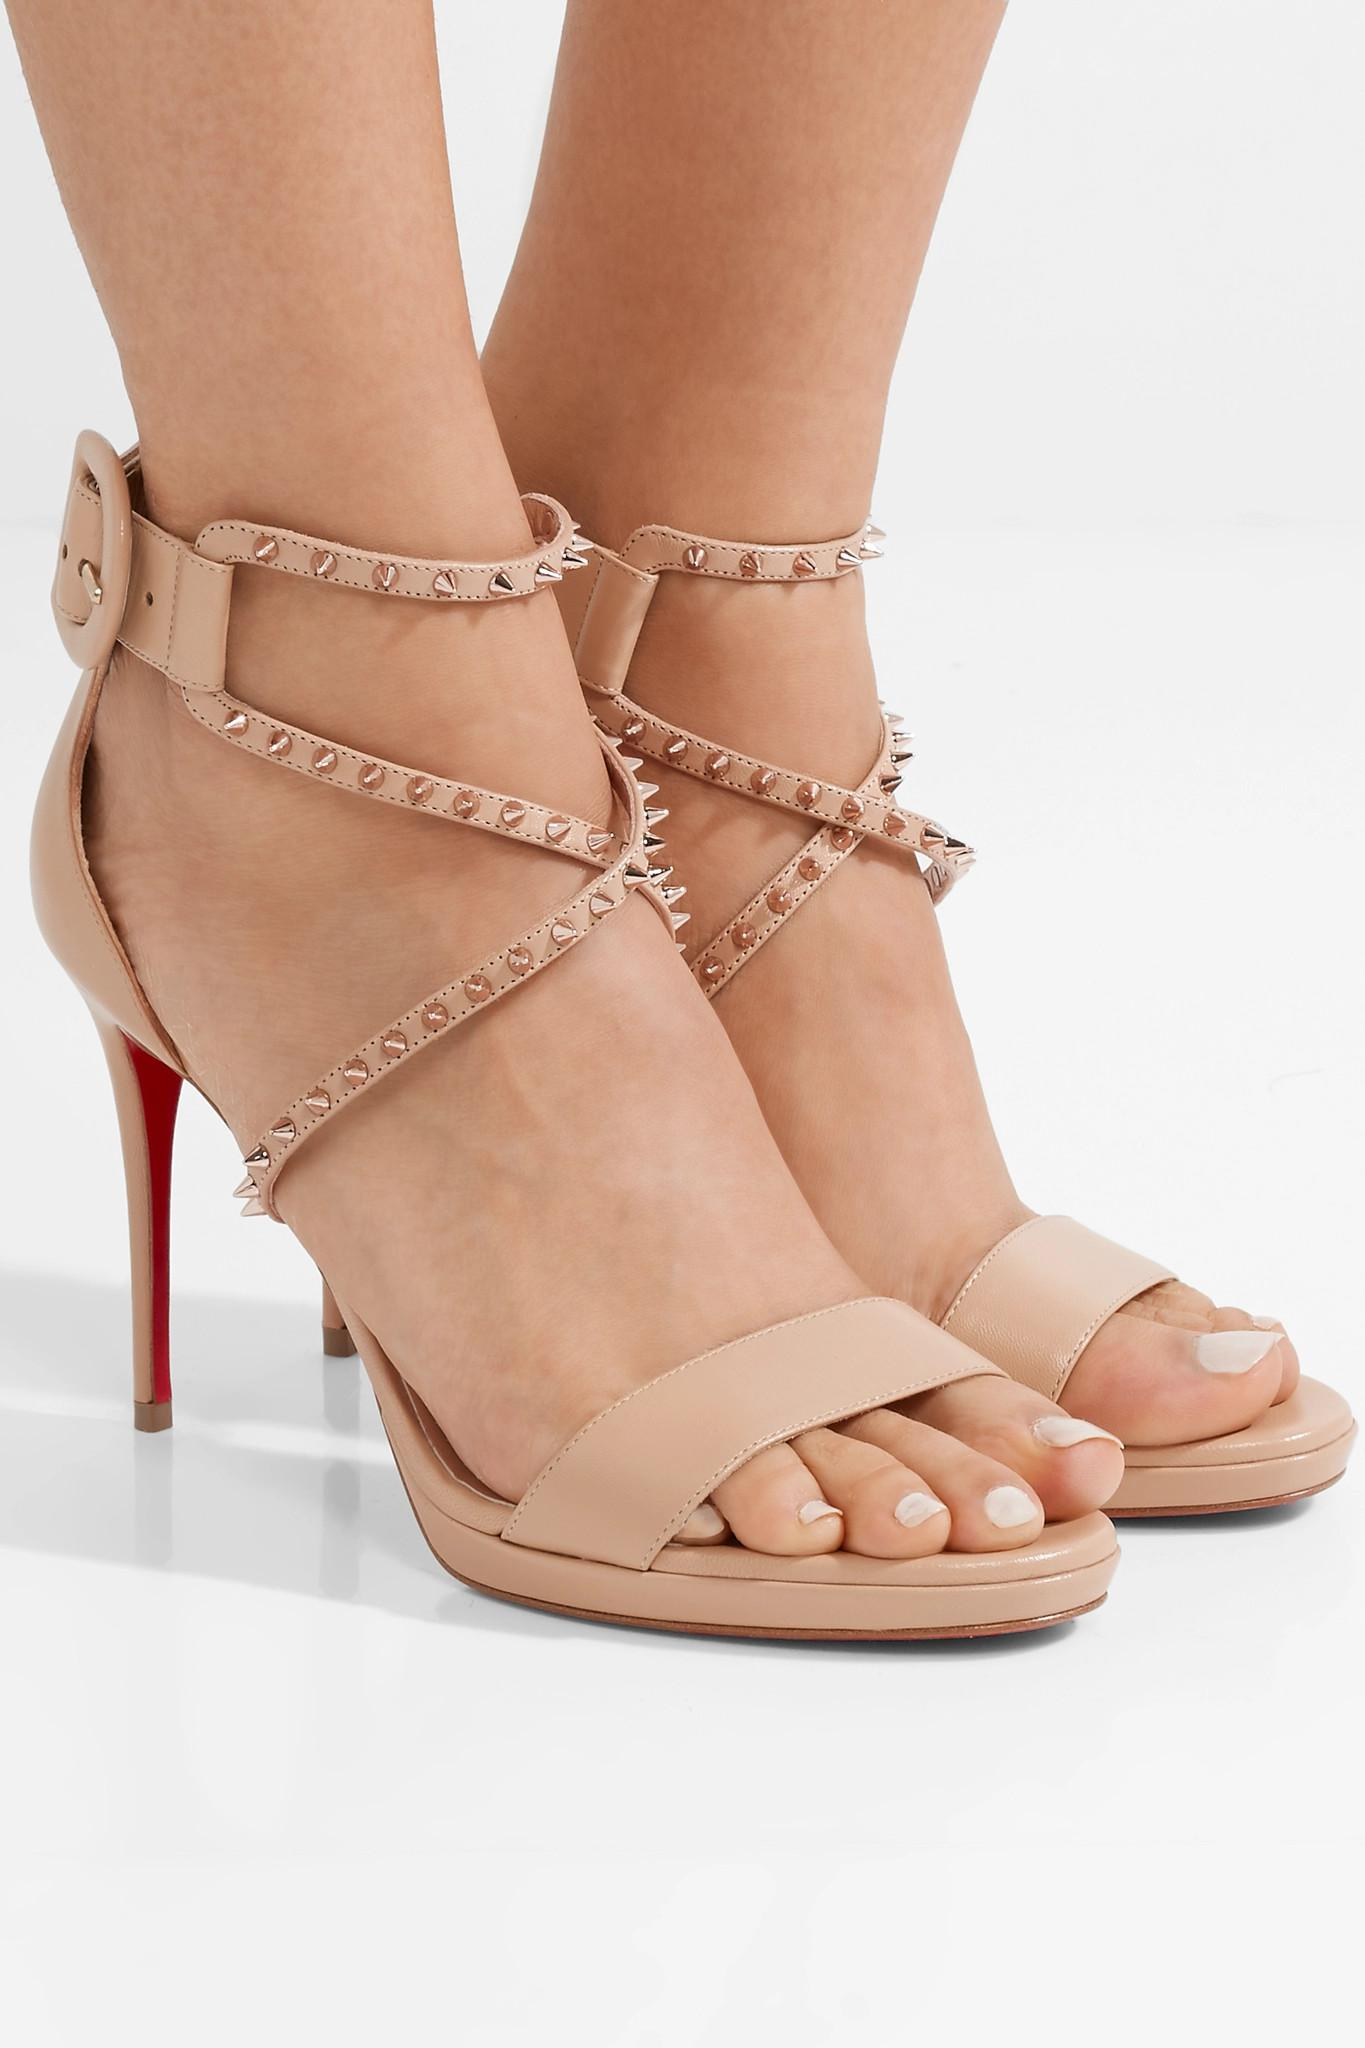 350dfb8e563 Christian Louboutin Choca Lux 100 Studded Leather Sandals - Lyst